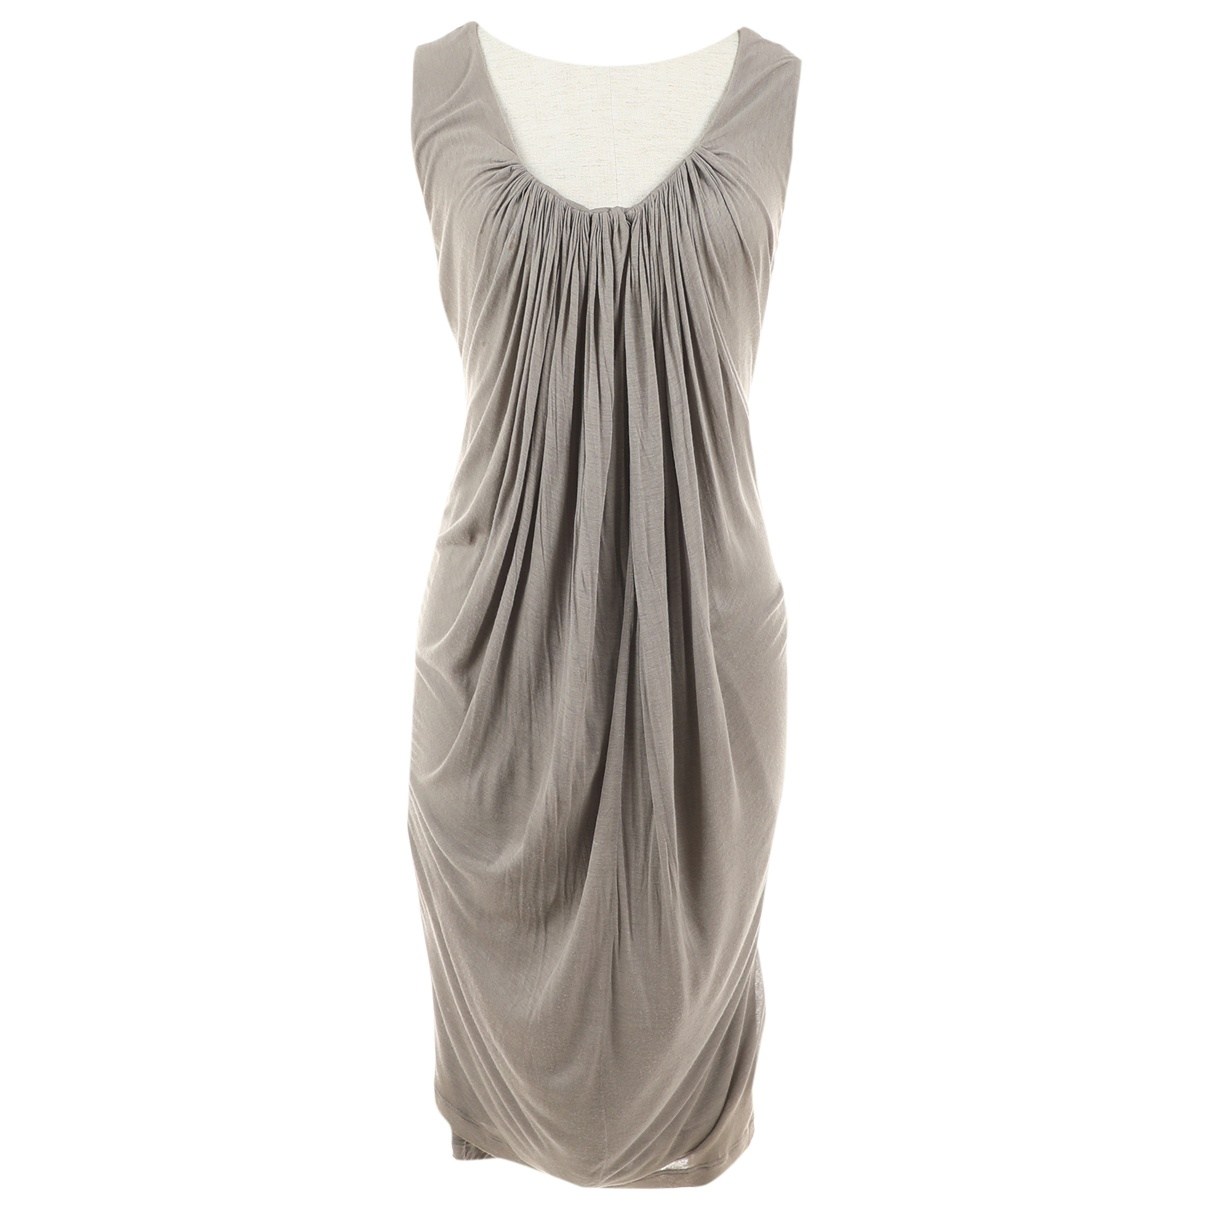 Stella Mccartney \N Kleid in  Grau Viskose